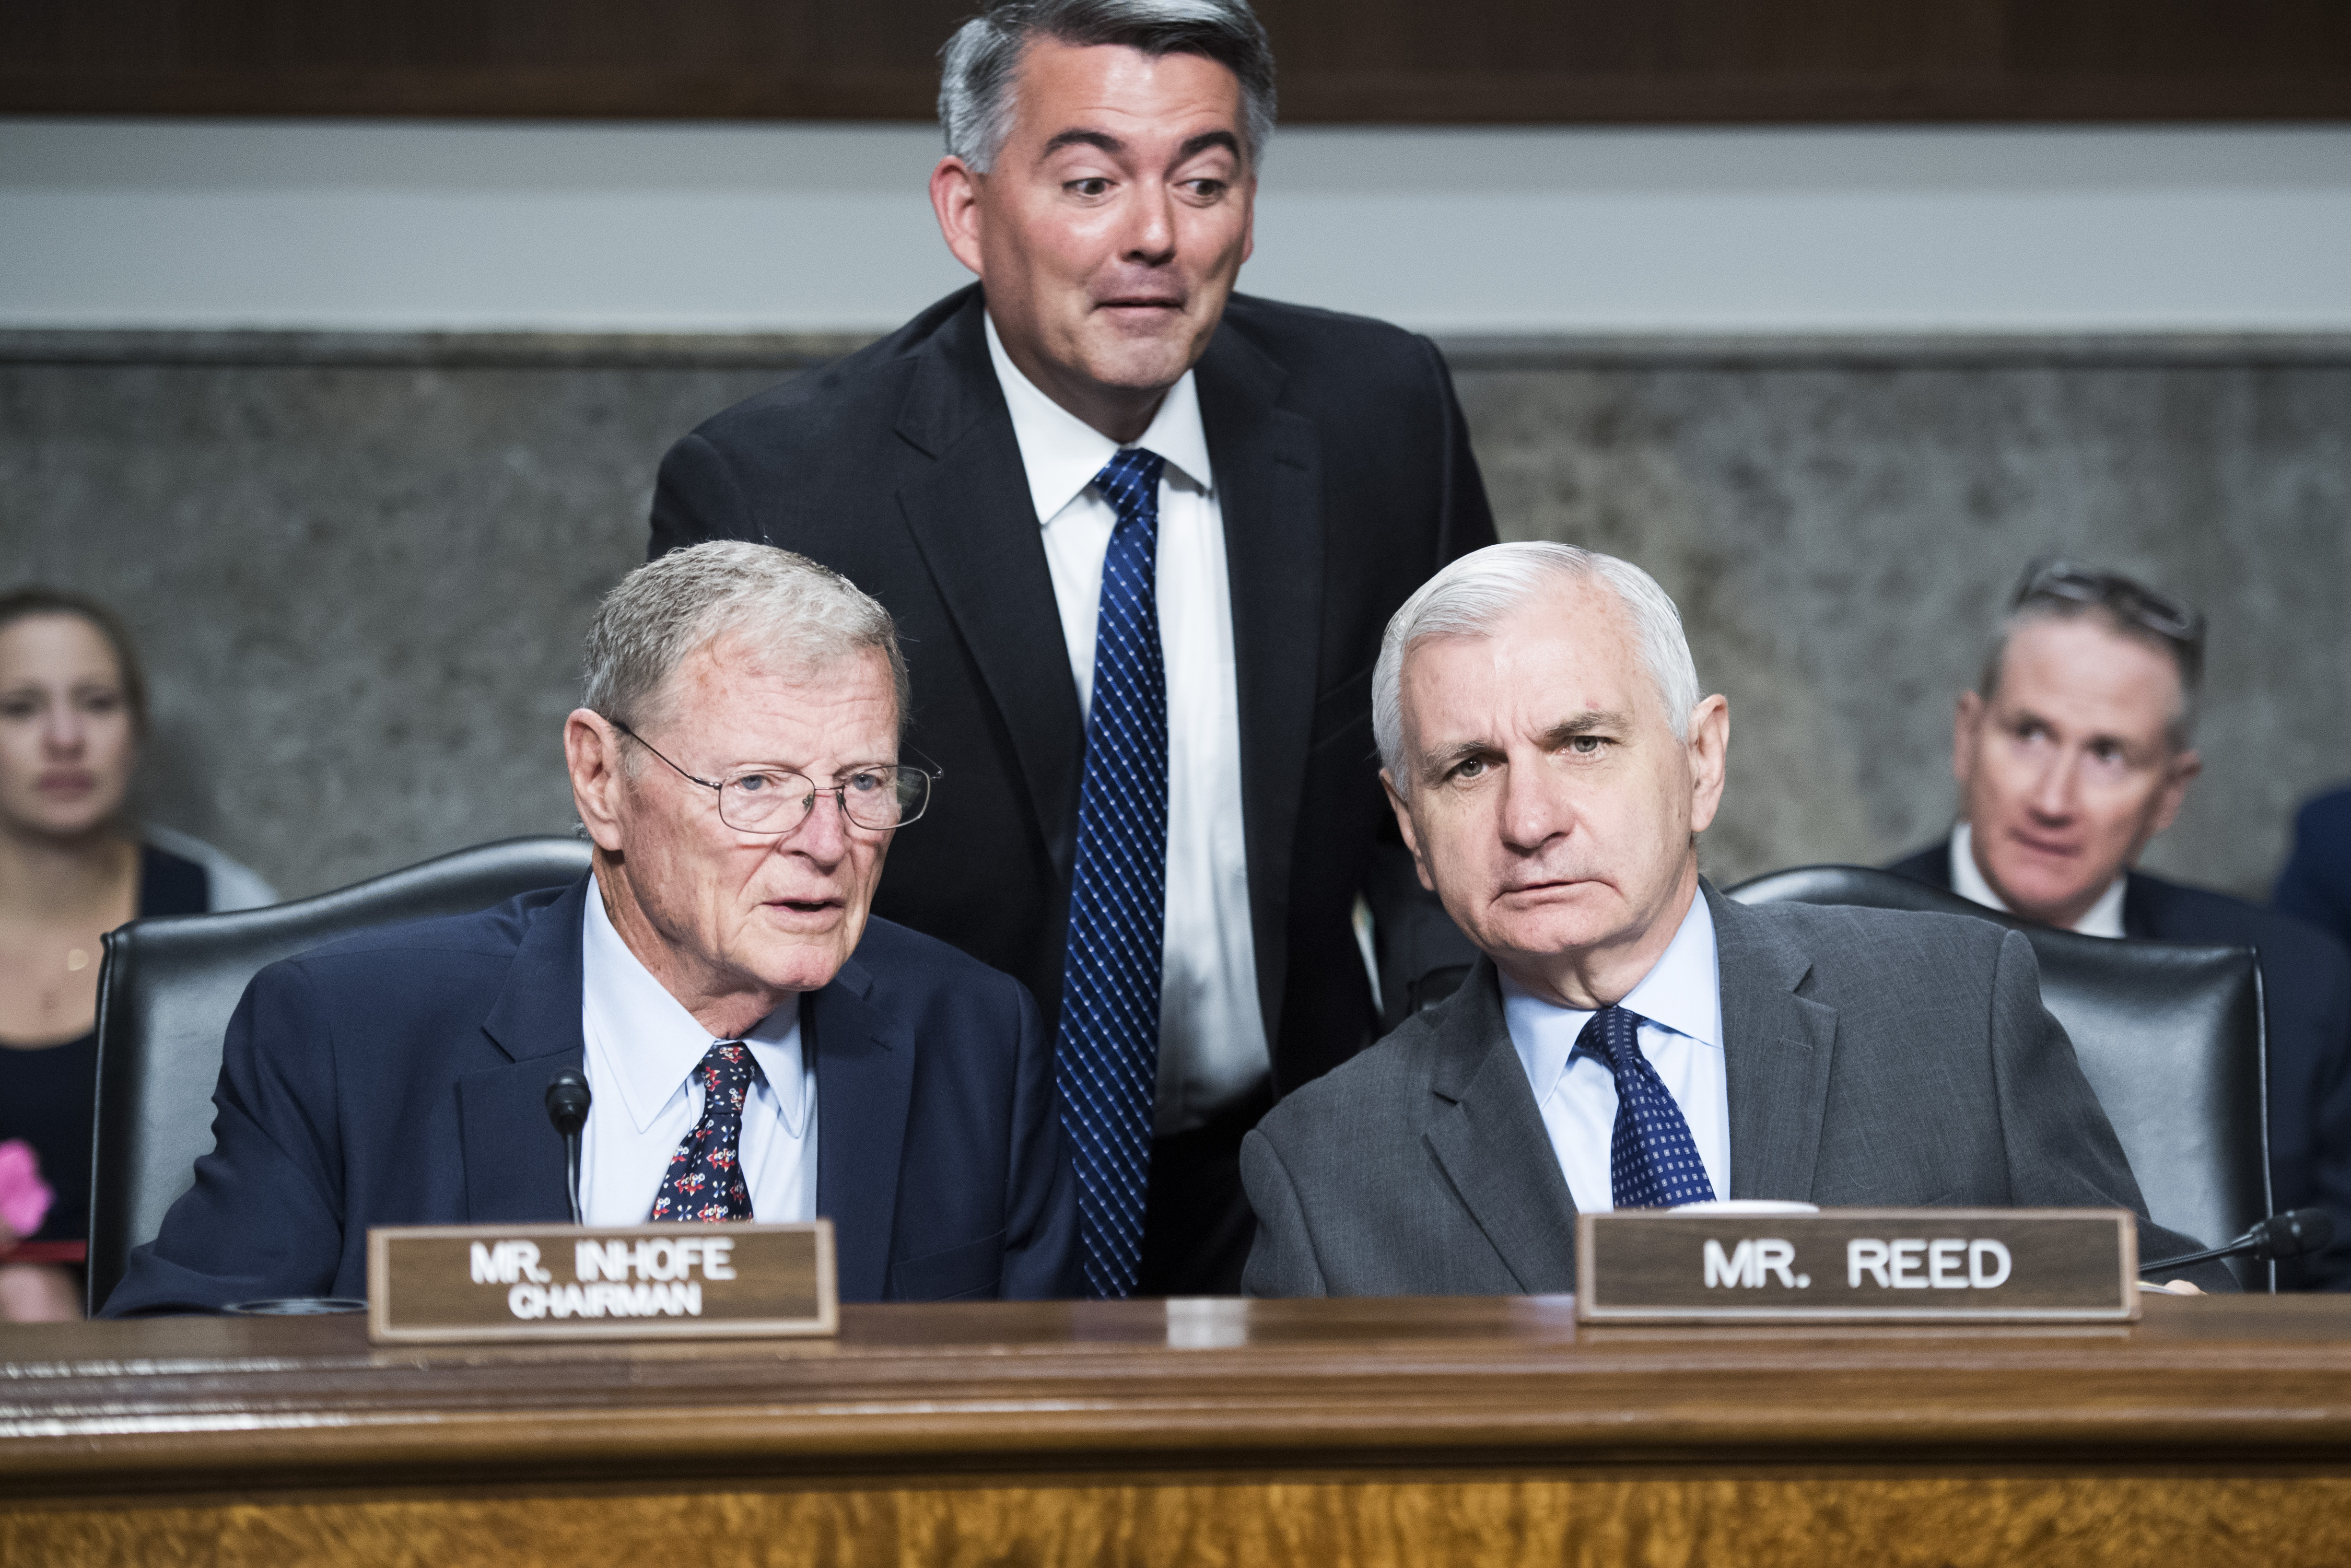 UNITED STATES - JUNE 4: Chairman James Inhofe, R-Okla., ranking member Sen. Jack Reed, D-R.I., and Sen. Cory Gardner, R-Colo., are seen during a Senate Armed Services Committee hearing on nominations in Dirksen Building on Tuesday, June 4, 2019. Dr. Christopher J. Scolese, is nominated to be director of the National Reconnaissance Office, and USAF Gen. John W. Raymond, to be commander of the U.S. Space Command and the Air Force Space Command. (Photo By Tom Williams/CQ Roll Call)